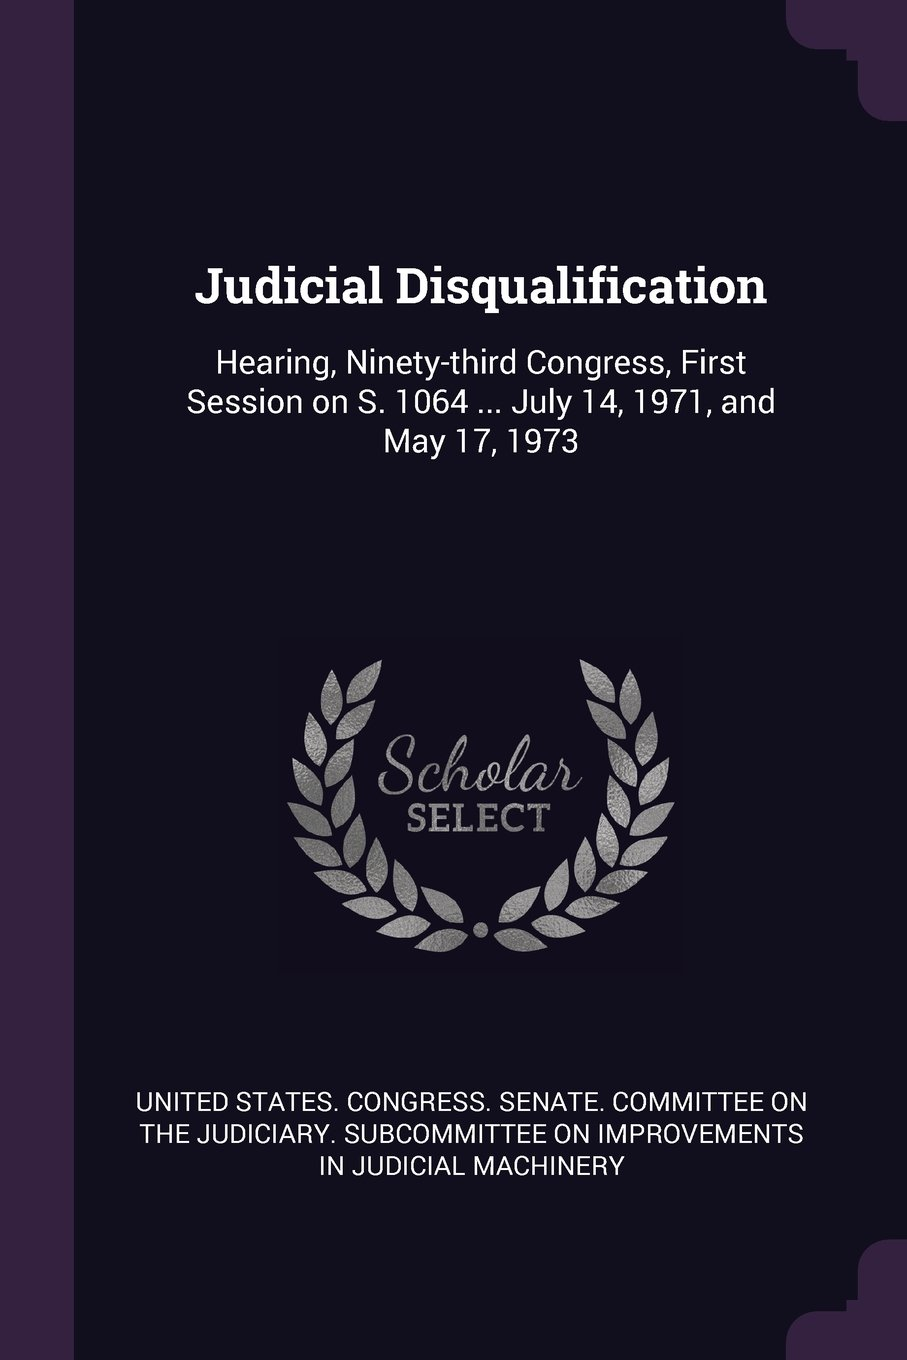 Judicial Disqualification: Hearing, Ninety-Third Congress, First Session on S. 1064 ... July 14, 1971, and May 17, 1973 PDF